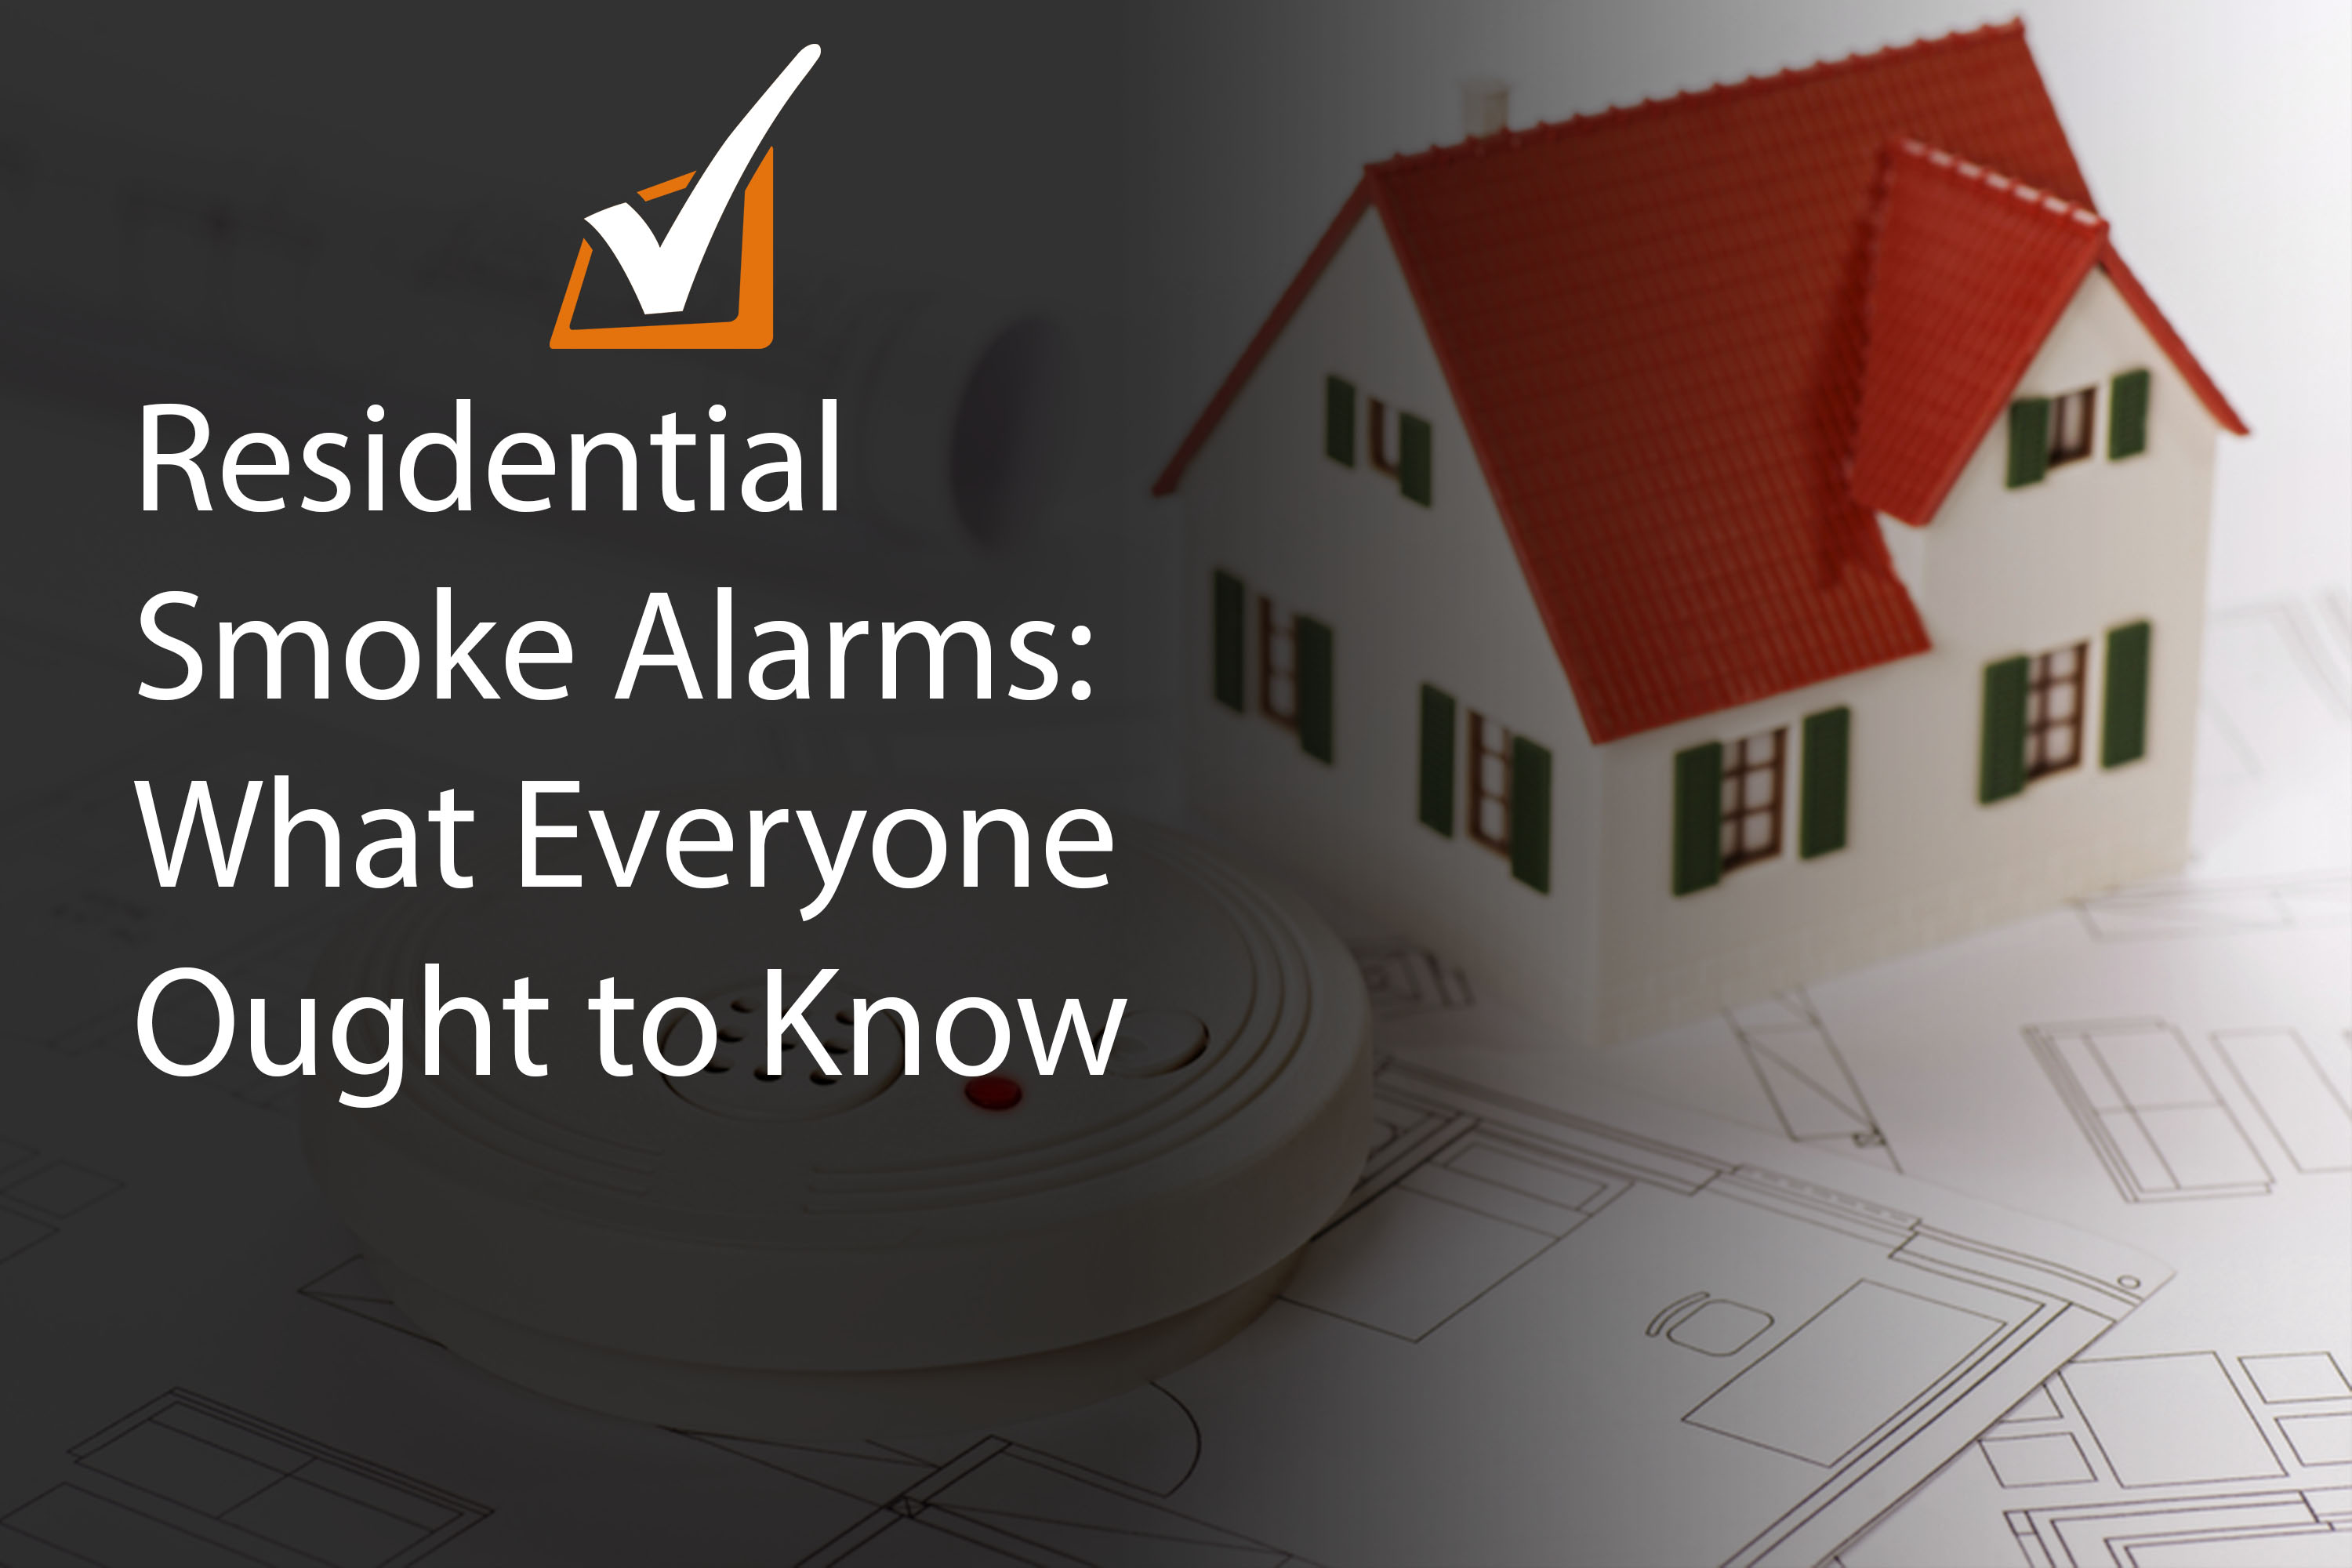 Residential Smoke alarms